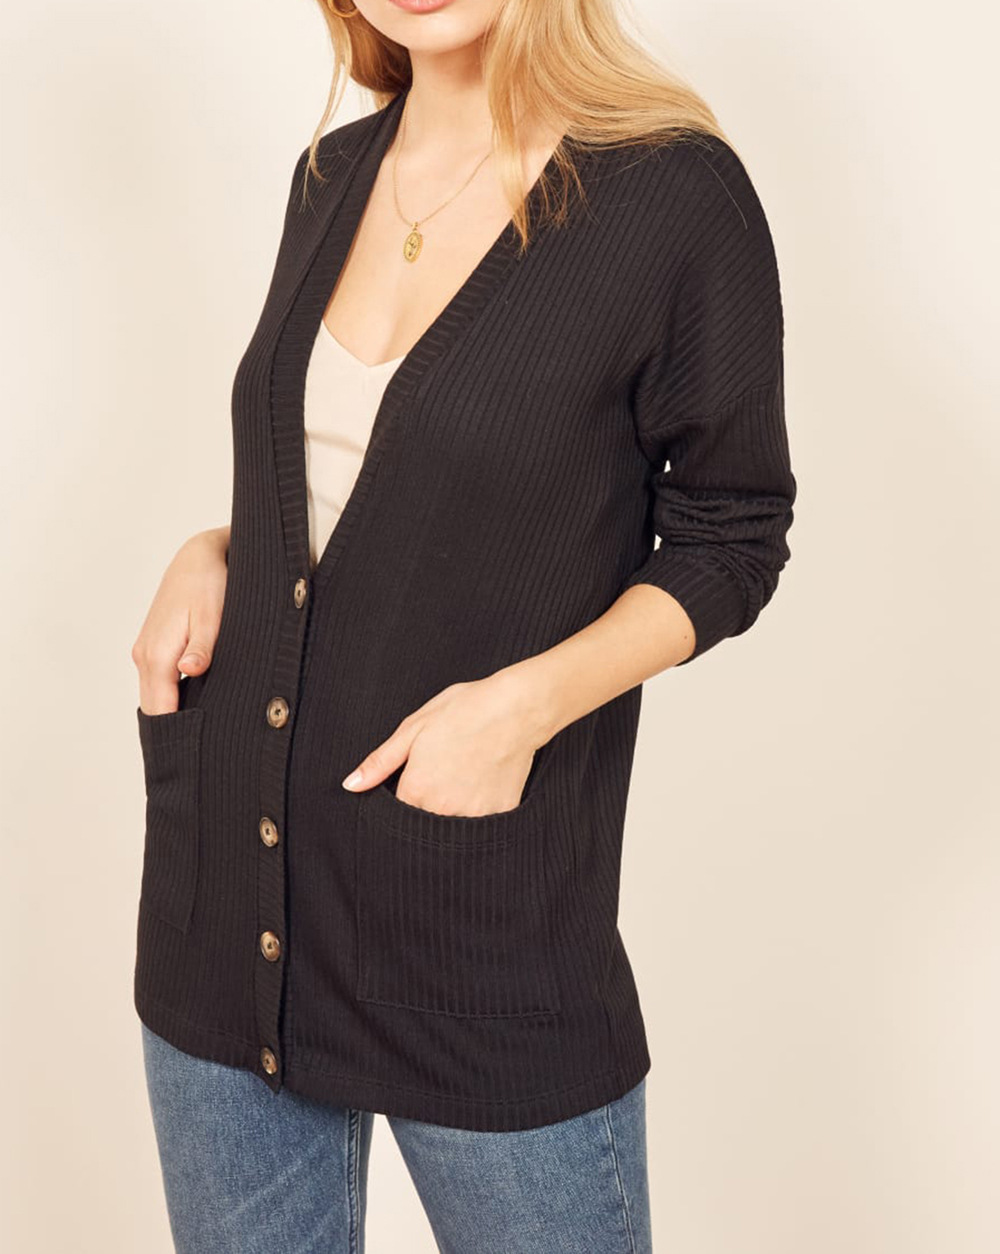 long-sleeved sunscreen plus size wool sweater women's cardigan single-breasted top NSDF1311